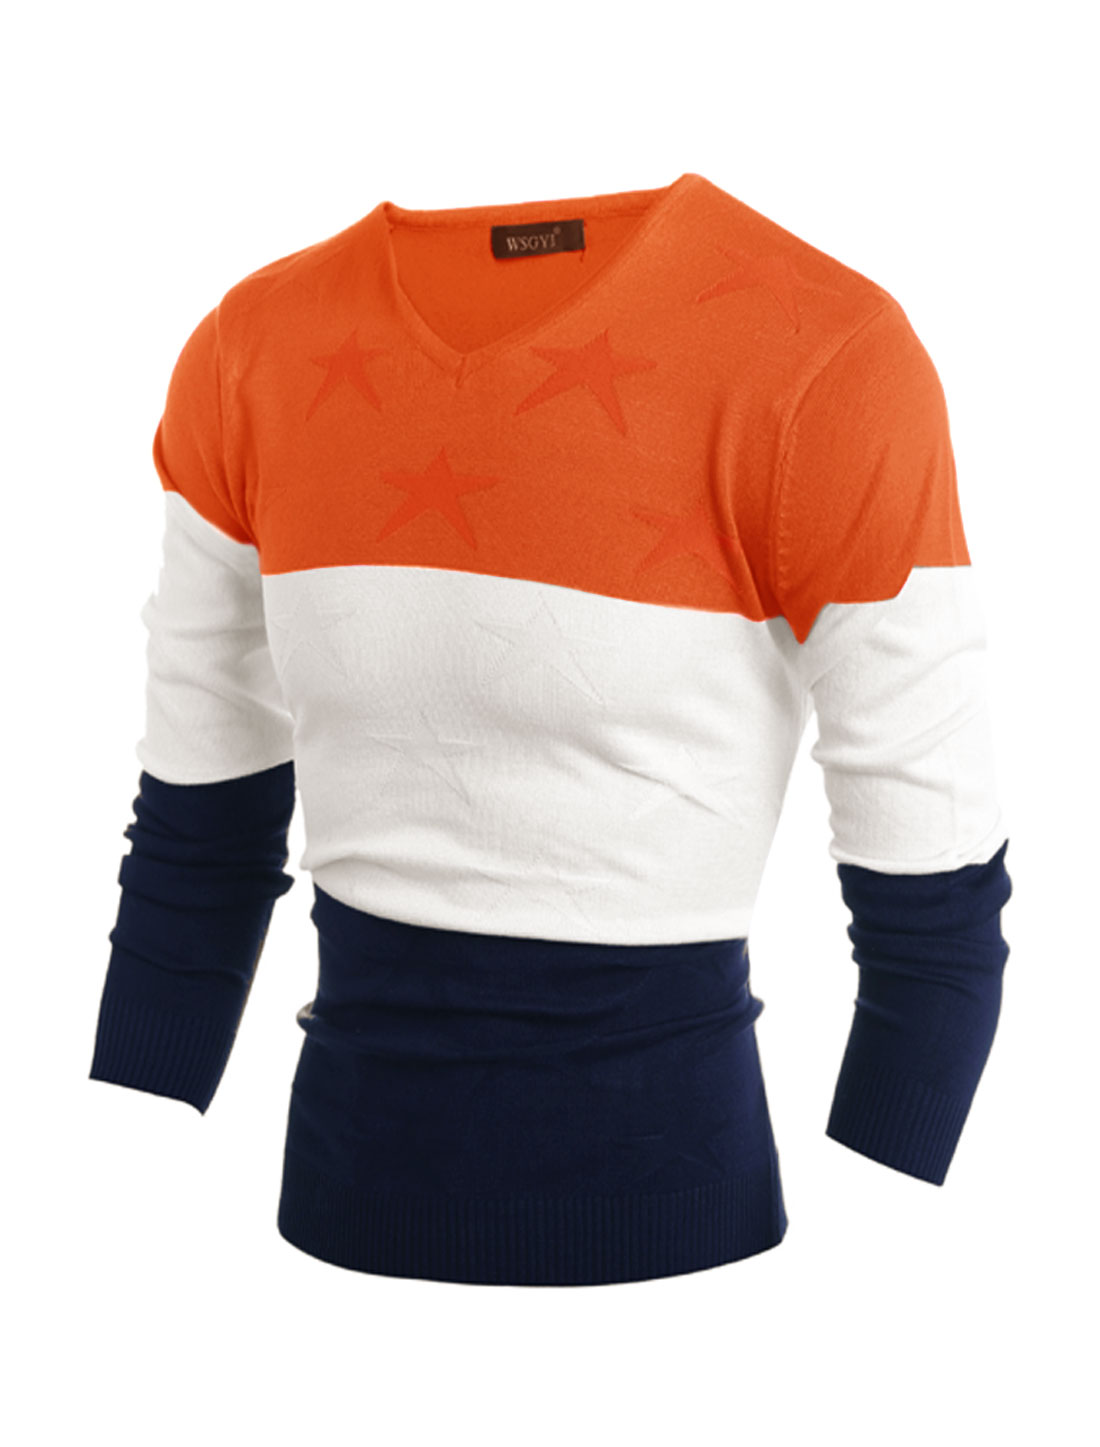 Men V Neck Stars Color Block Slim Fit Knit Shirt Orange M